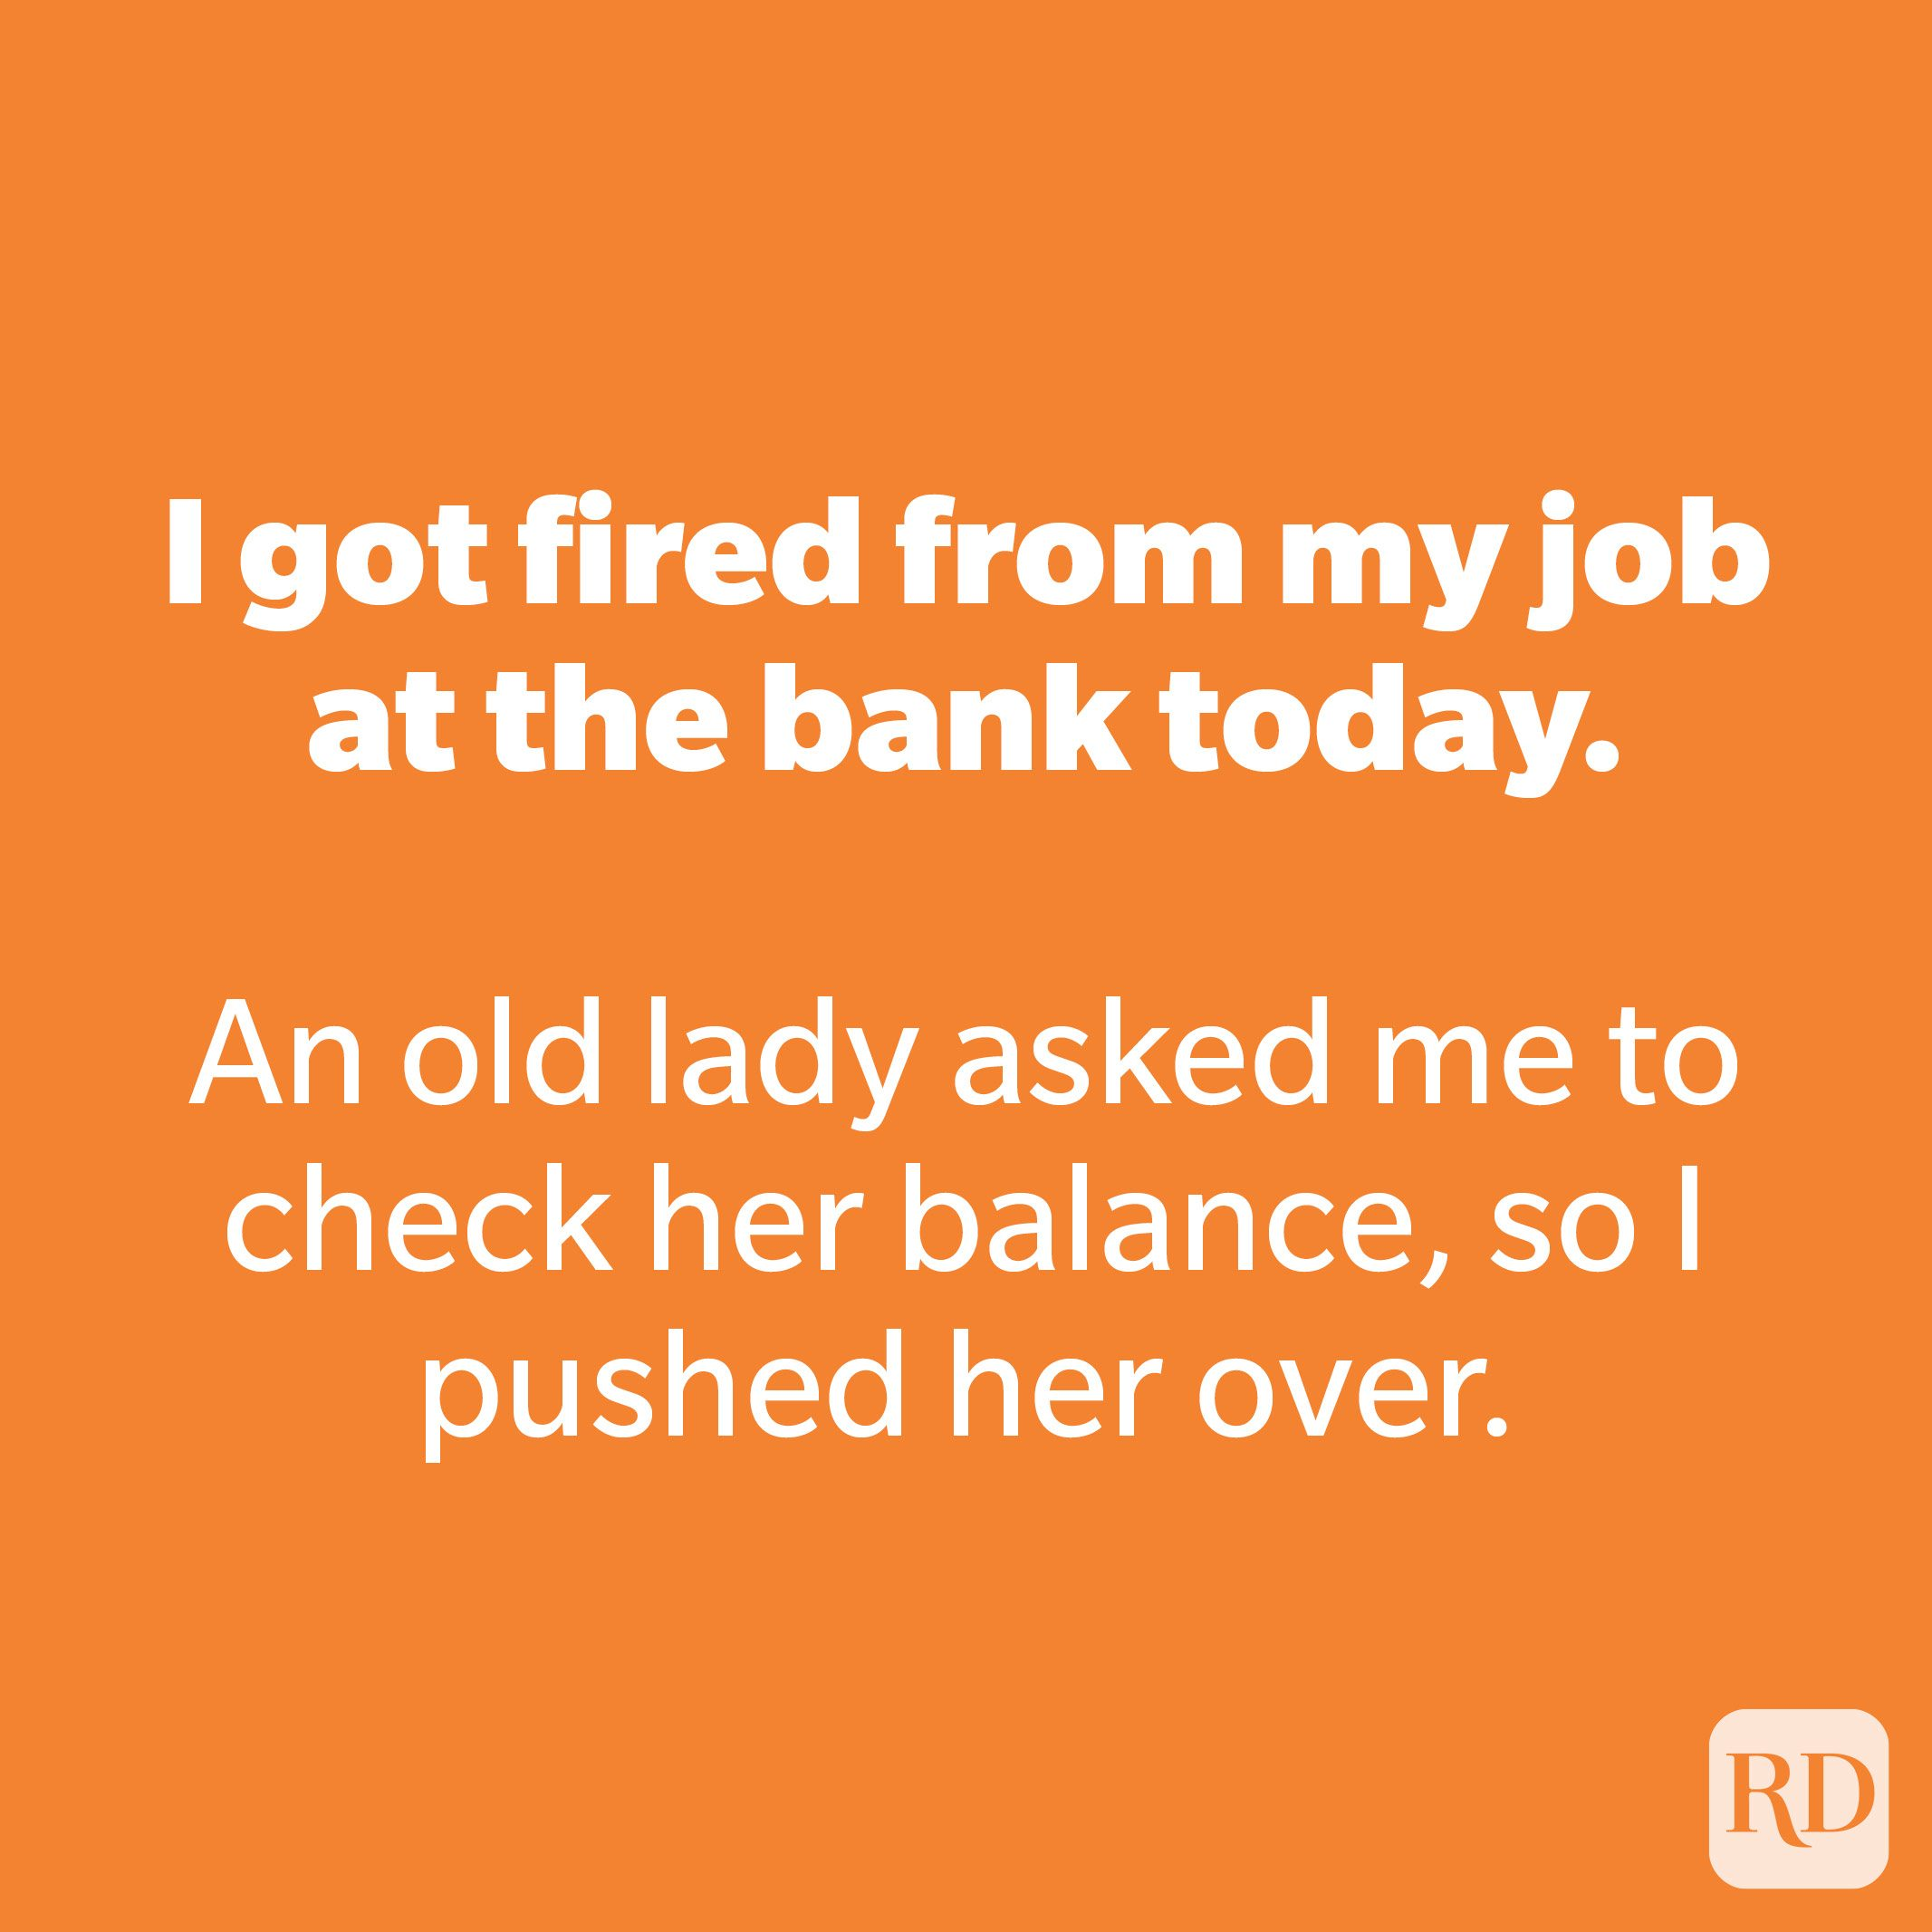 I got fired from my job at the bank today.